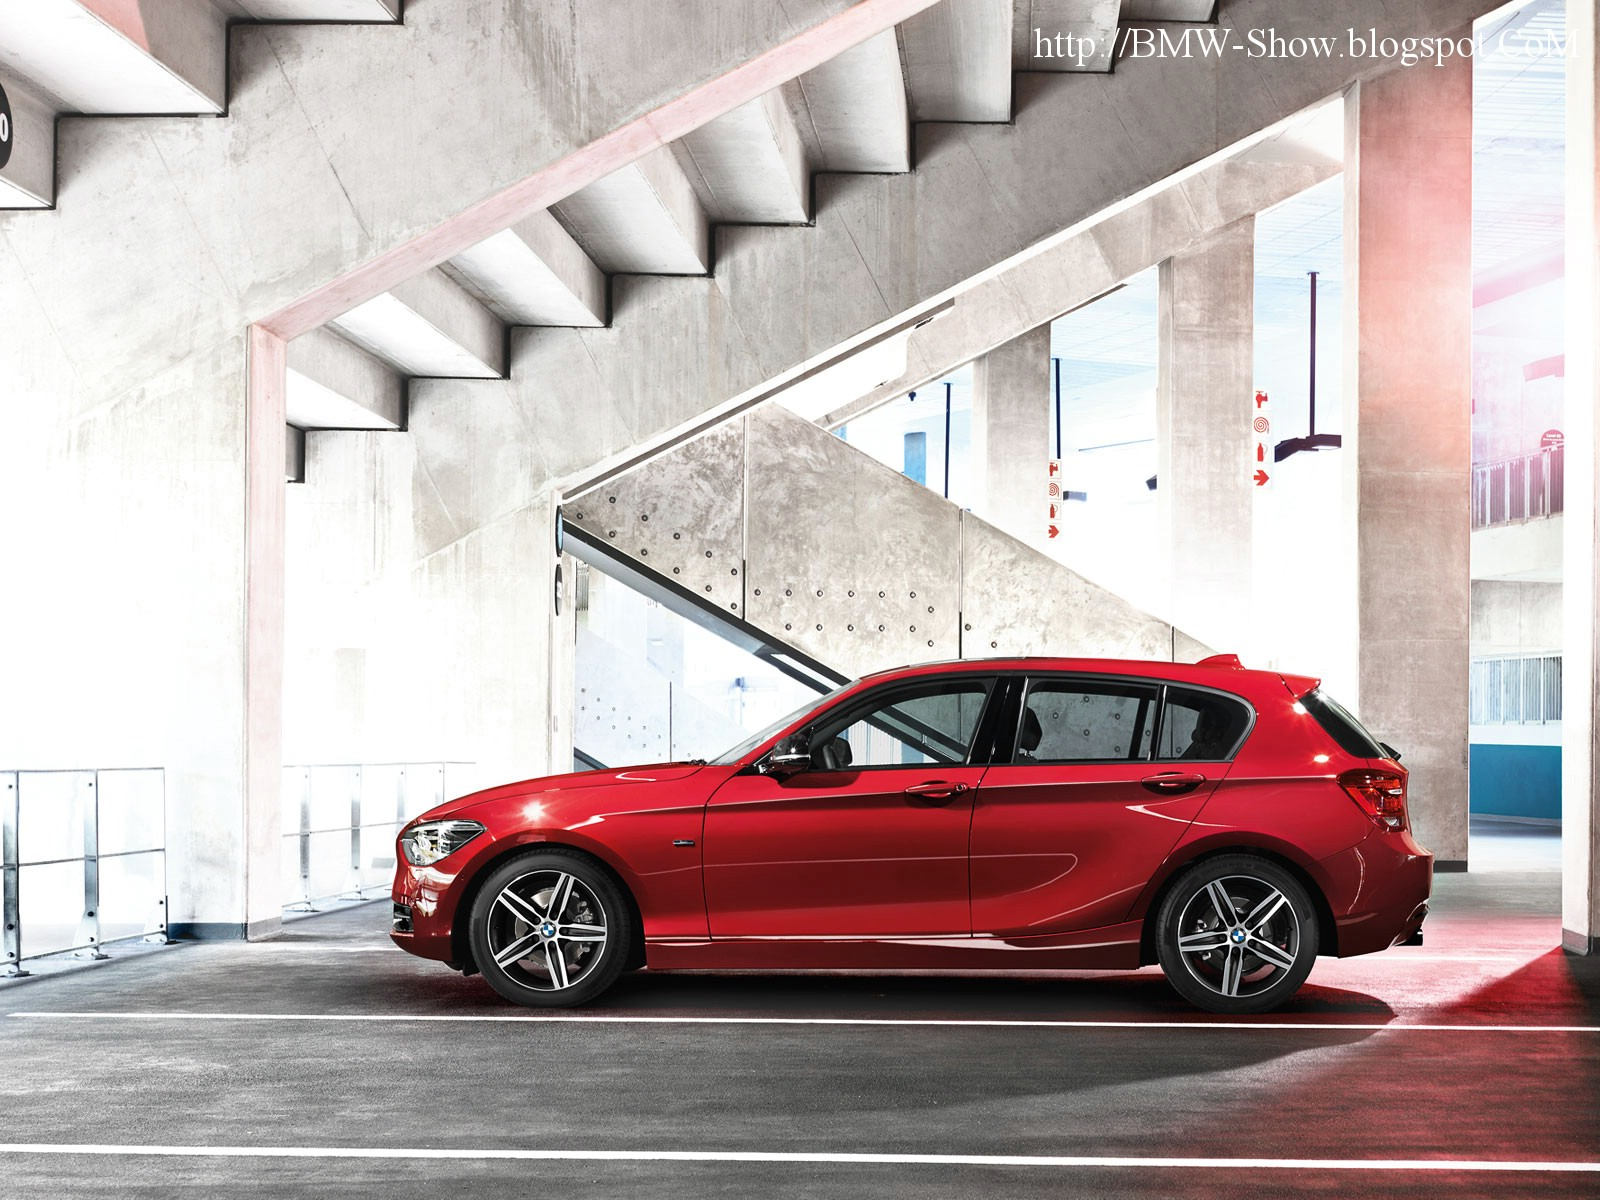 BMW 1 Series (5-door) (2011) - BMW - FORUM Auto Journal